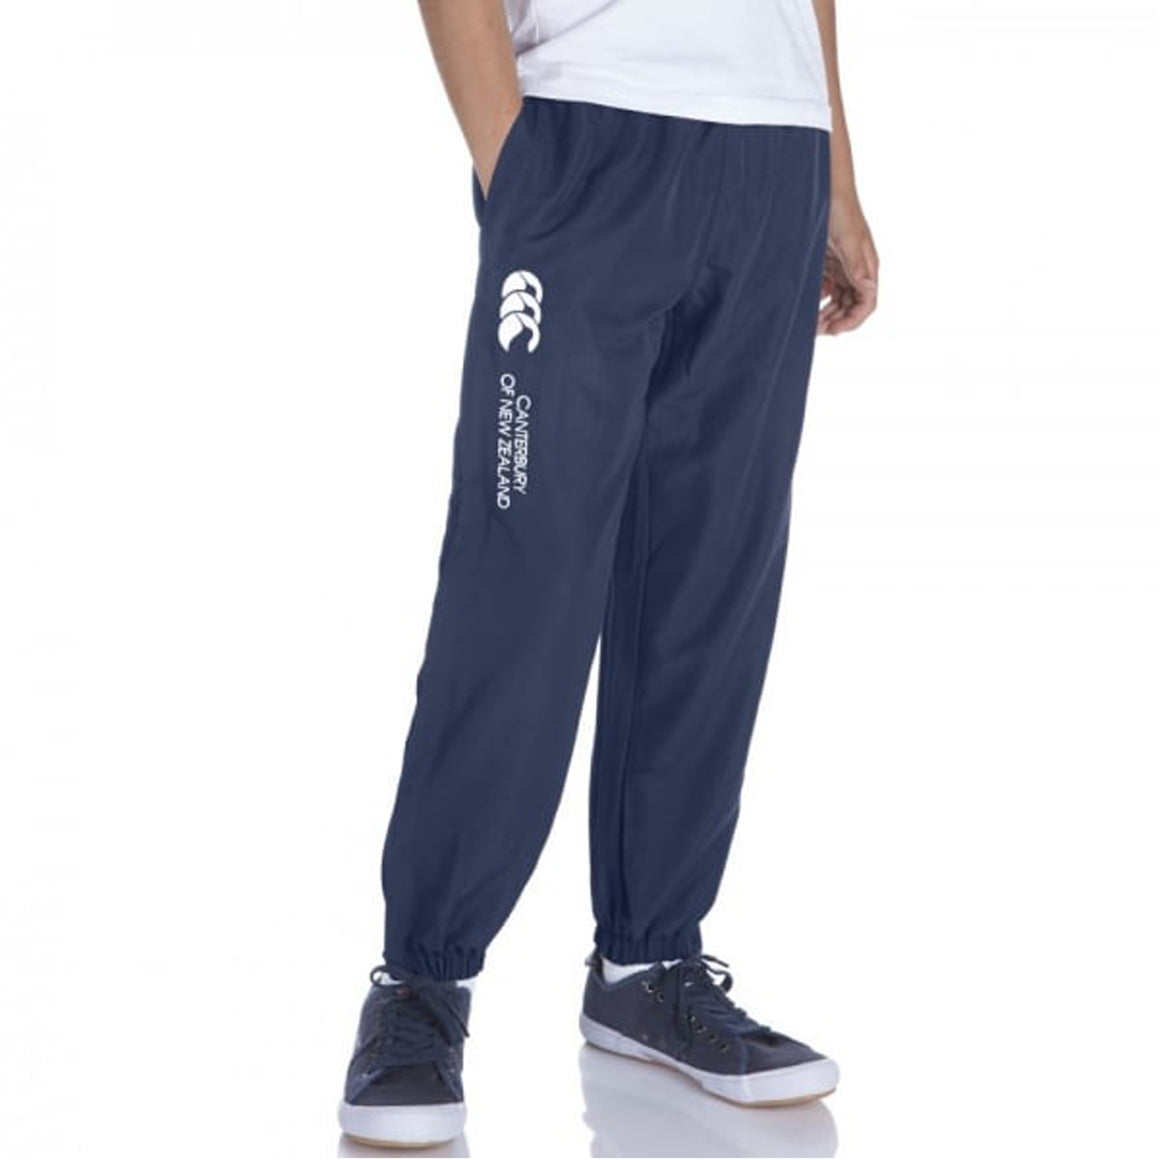 Cuffed Hem Stadium Pants for Kids in Navy